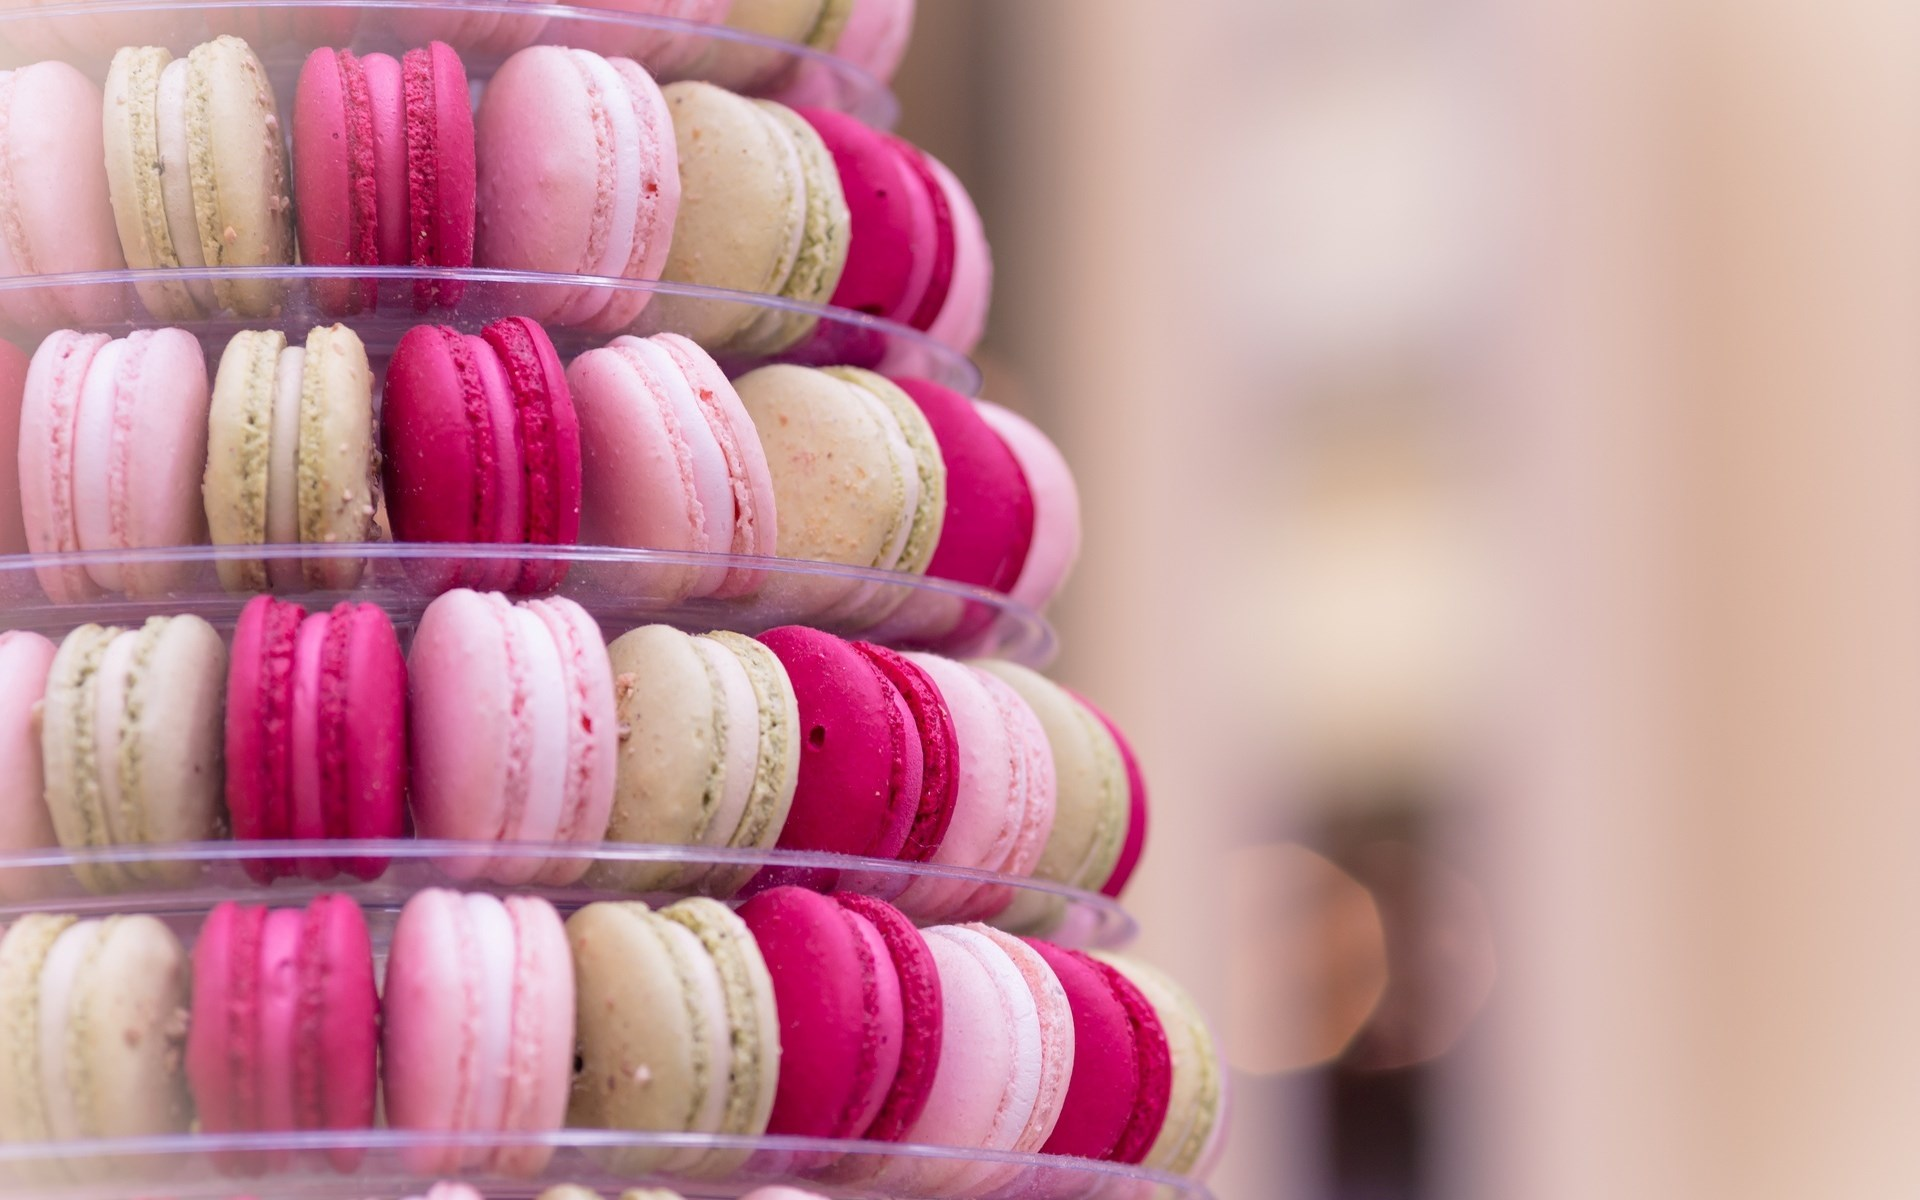 Awesome Macaron Wallpaper